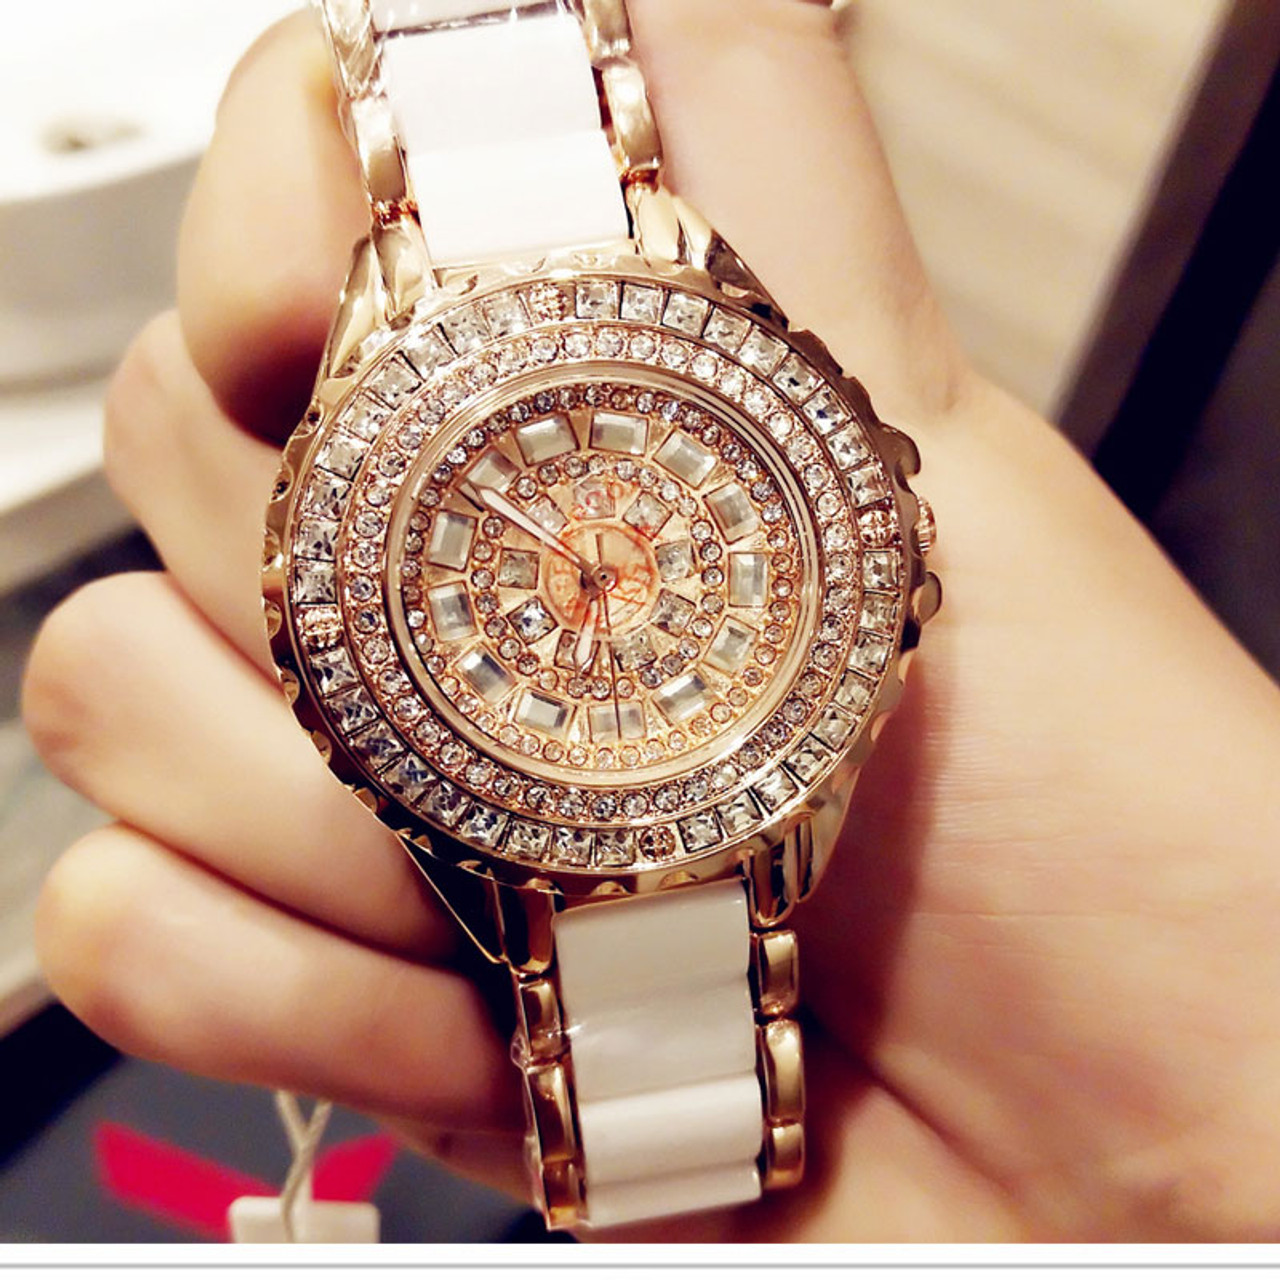 Fashion jewelry and watches